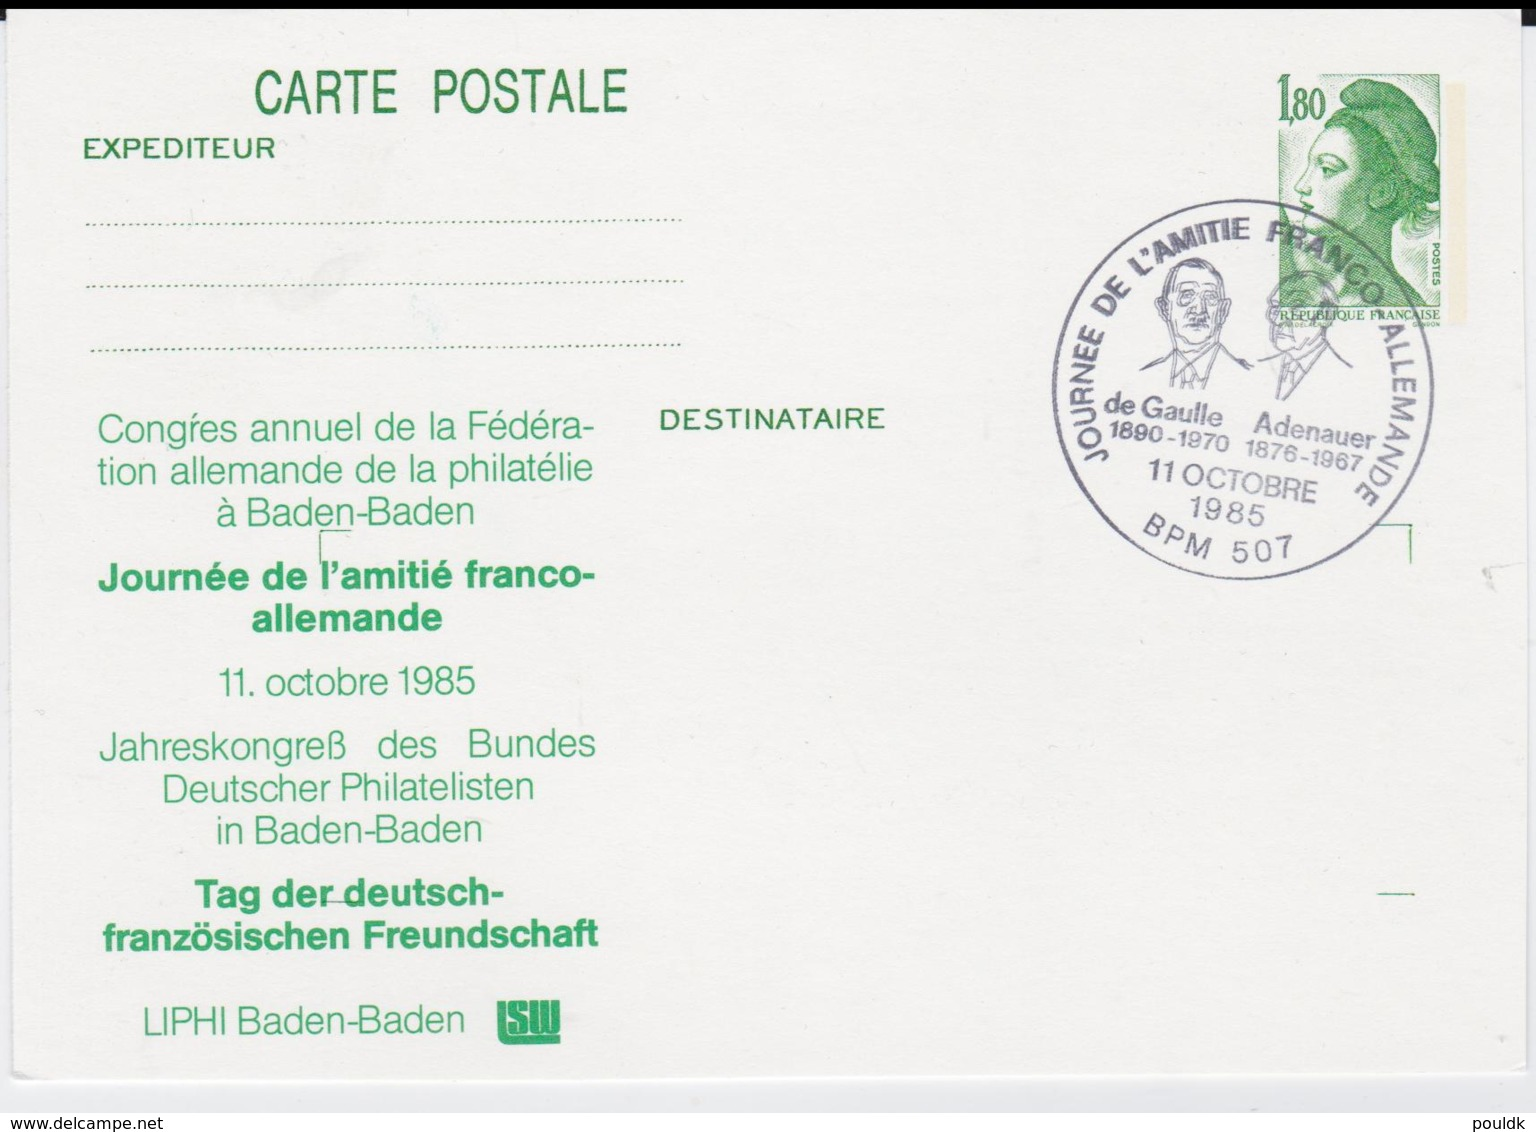 France Postal Stationary Posted BPM 507 (French Military Post In Baden-Baden) 1985 Journee De L'amitie - Biglietto Postale